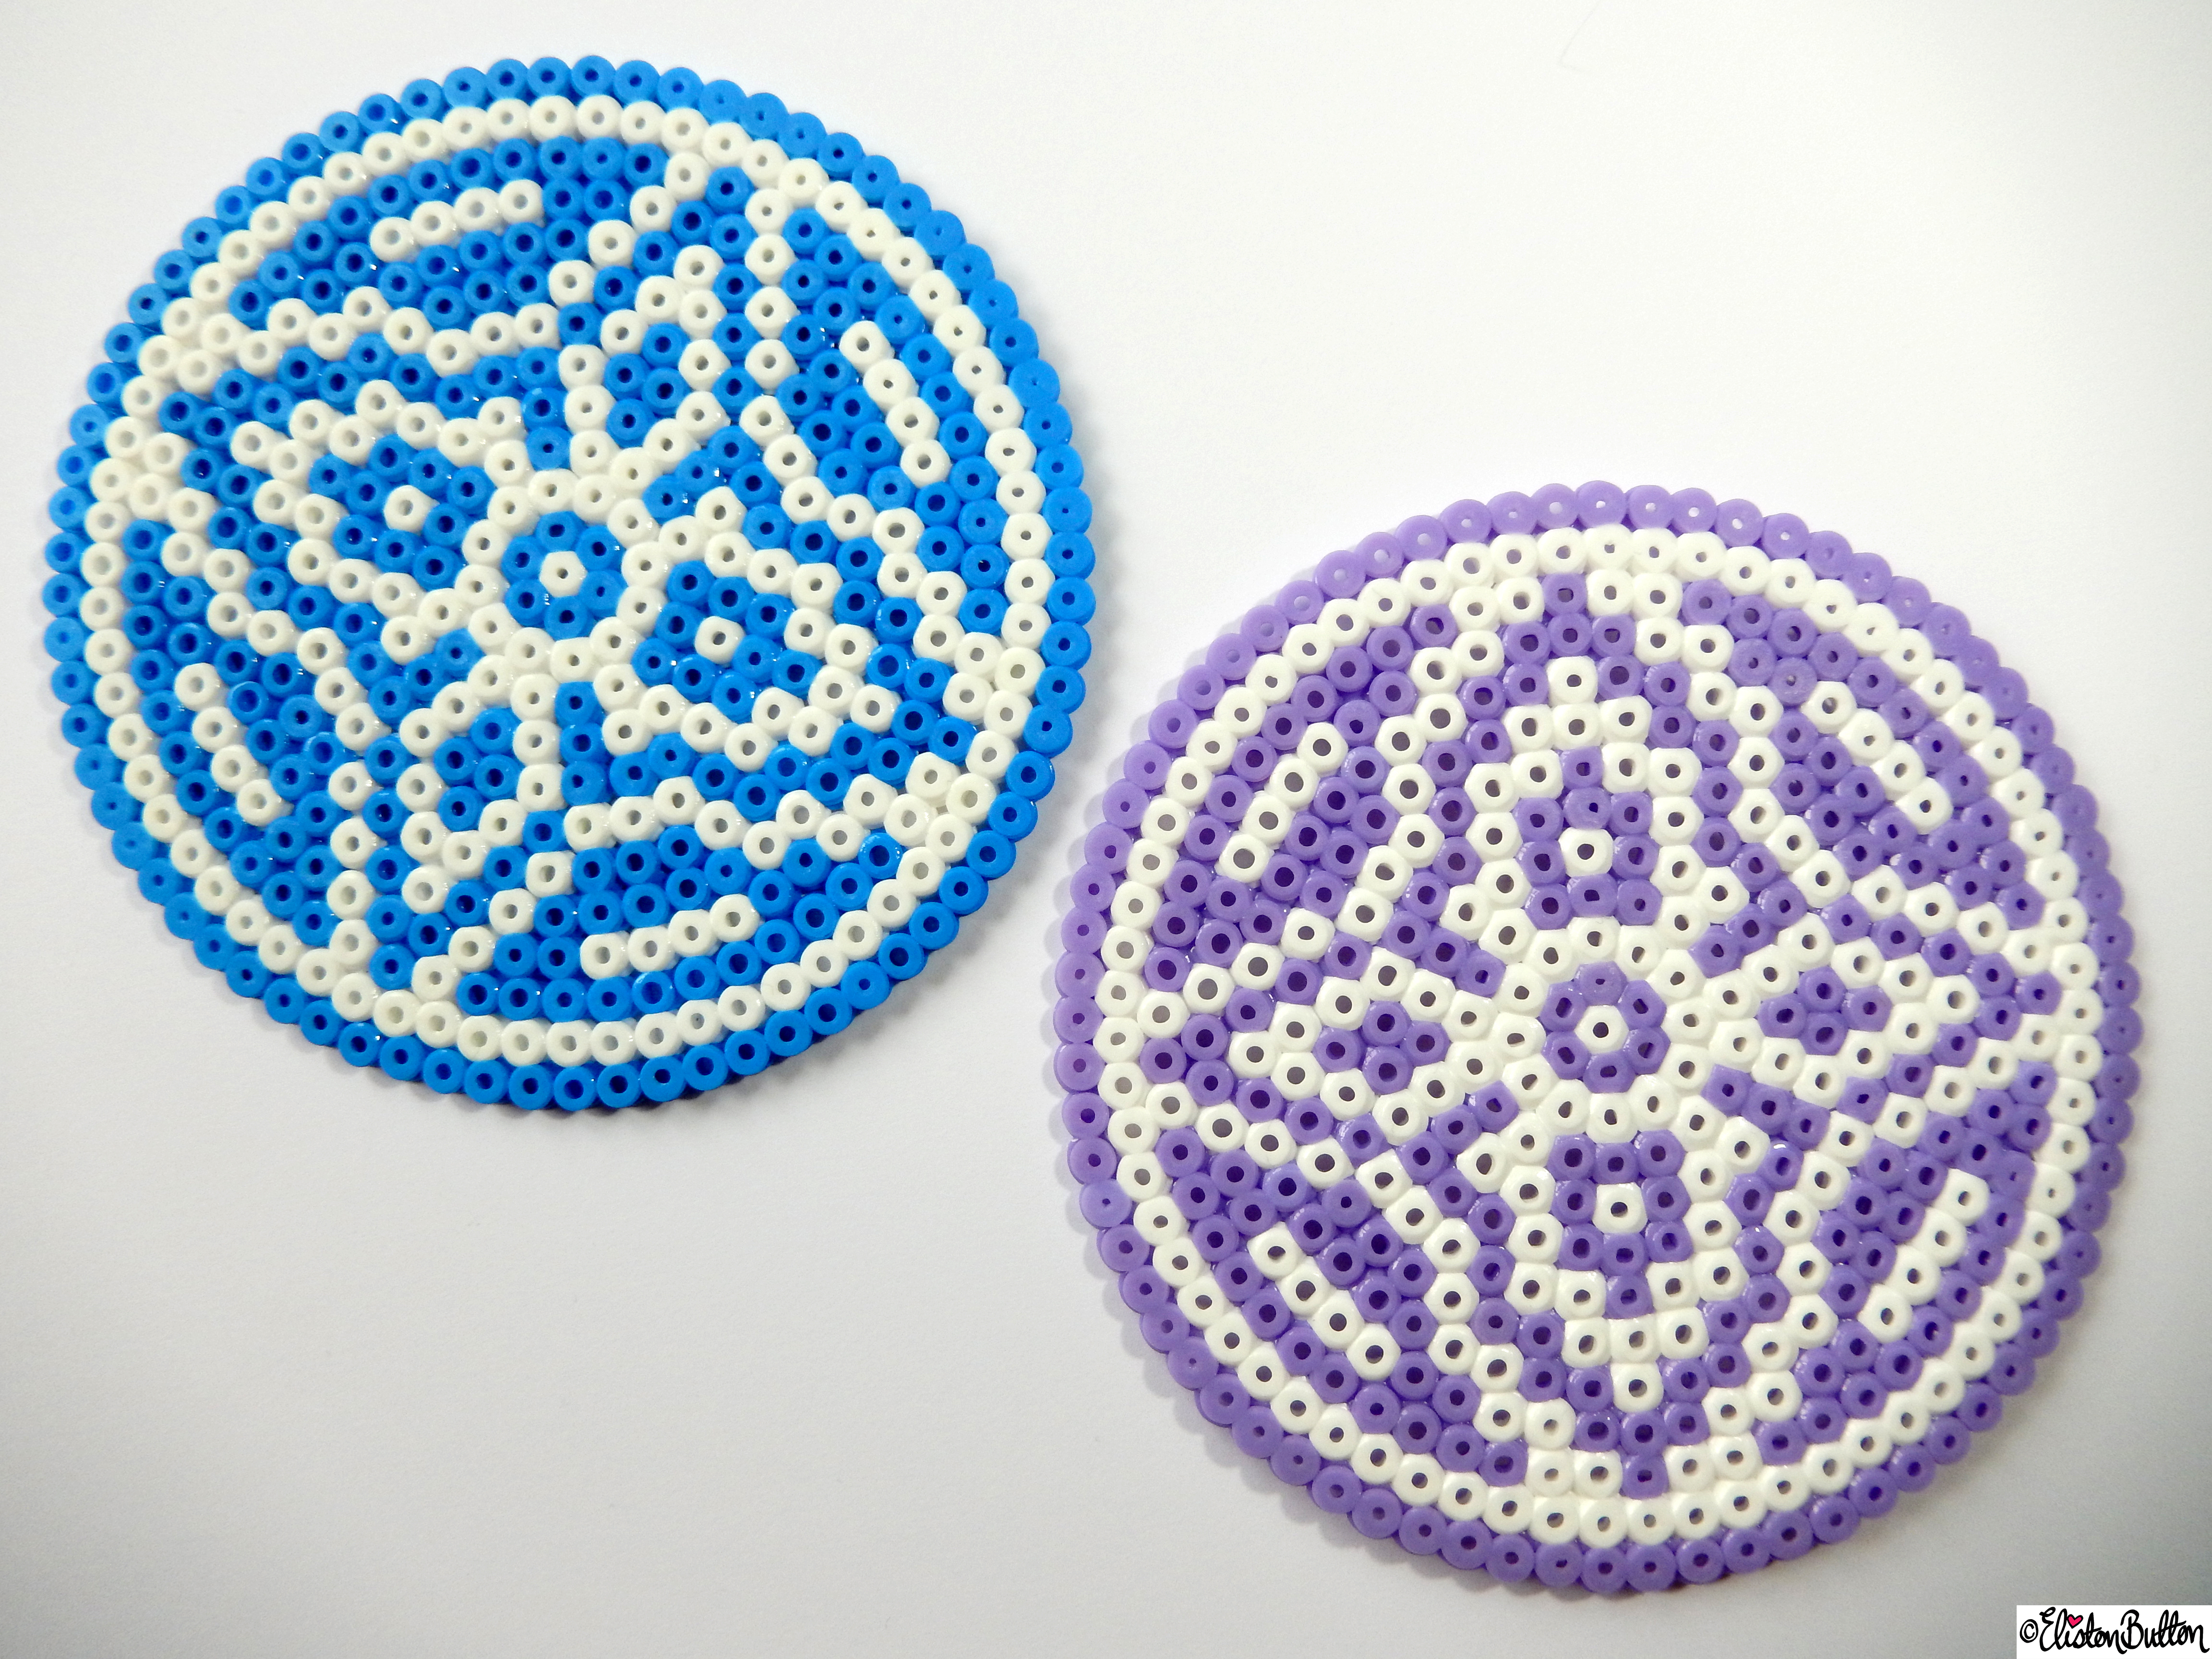 Large Picture and Hama Bead Patterned Coasters Together - Create 28 - No. 9&10 - Picture Bead Coasters at www.elistonbutton.com - Eliston Button - That Crafty Kid – Art, Design, Craft & Adventure.